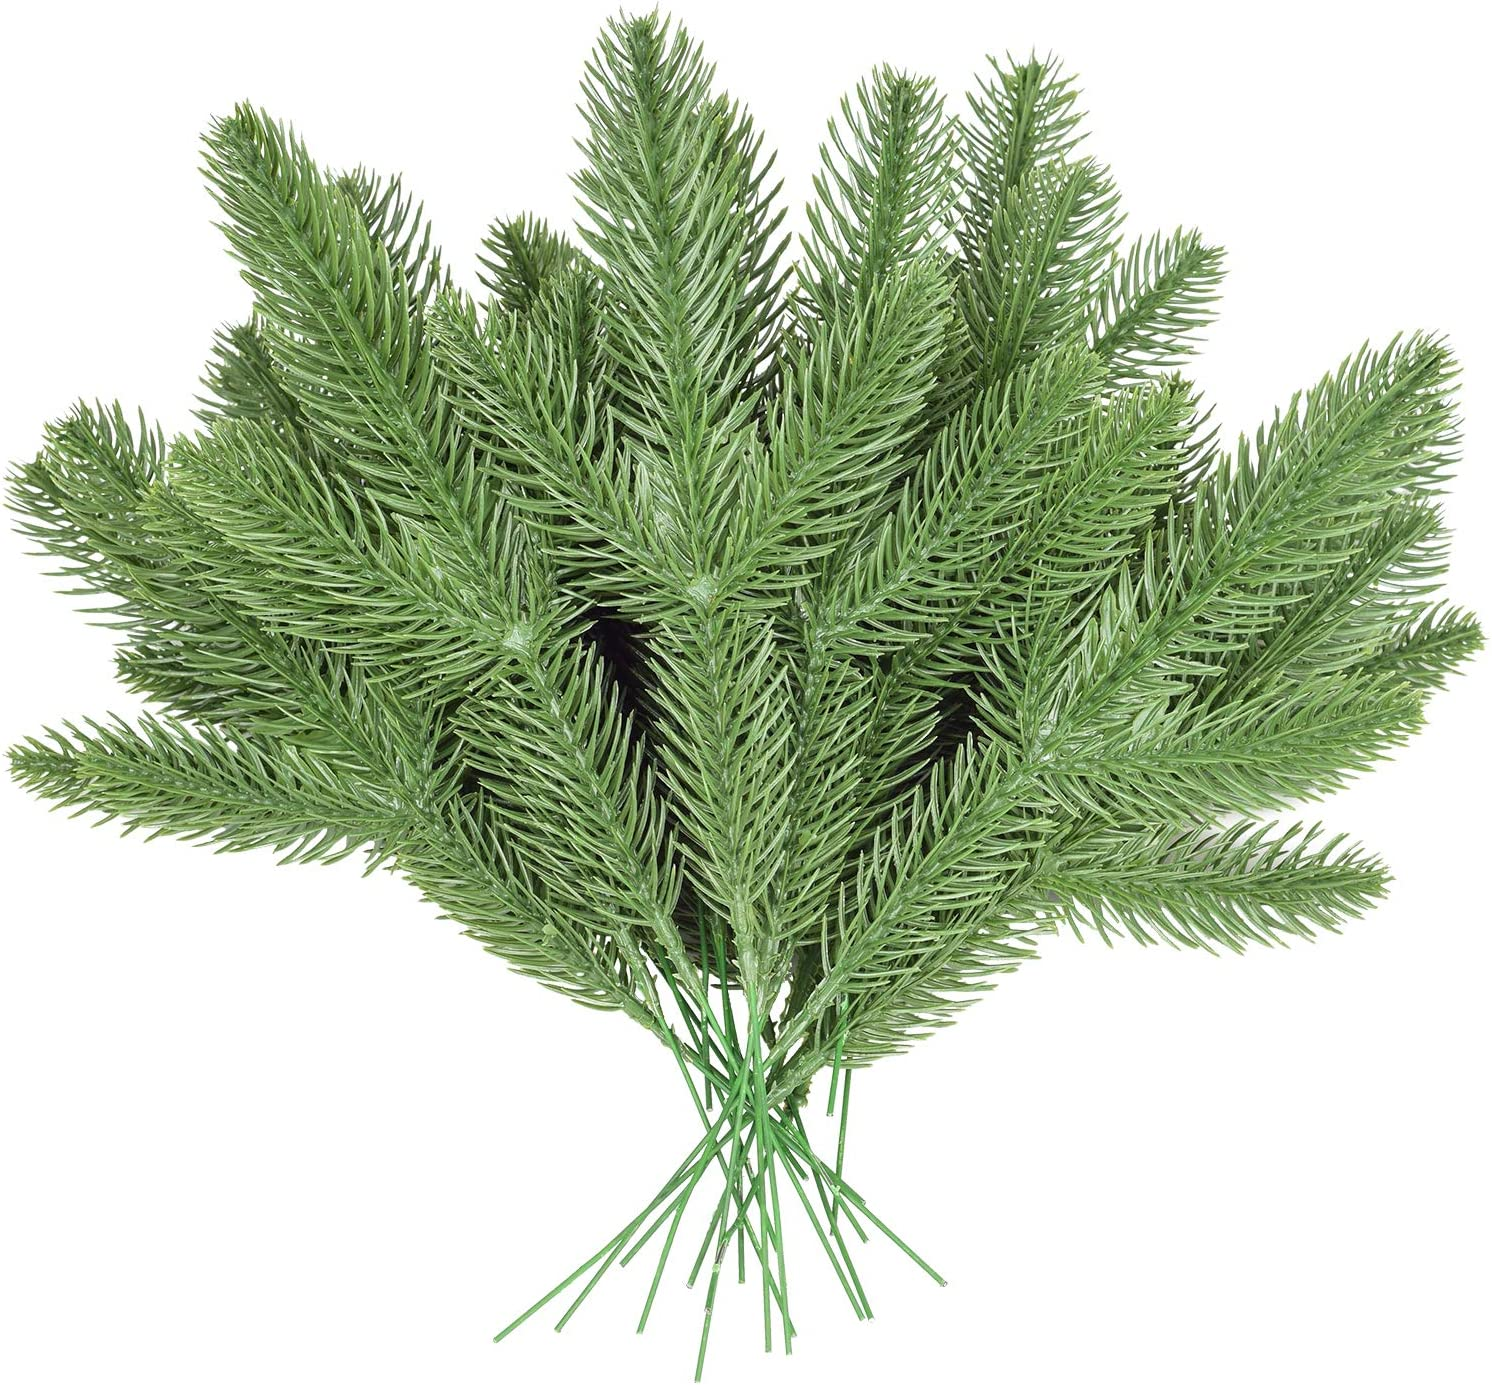 "DearHouse 36pcs Artificial Pine Picks,11"" Pine Needle Garland Christmas Artificial Greenery for Crafts Wreath Christmas Embellishing and Home Garden Decor"